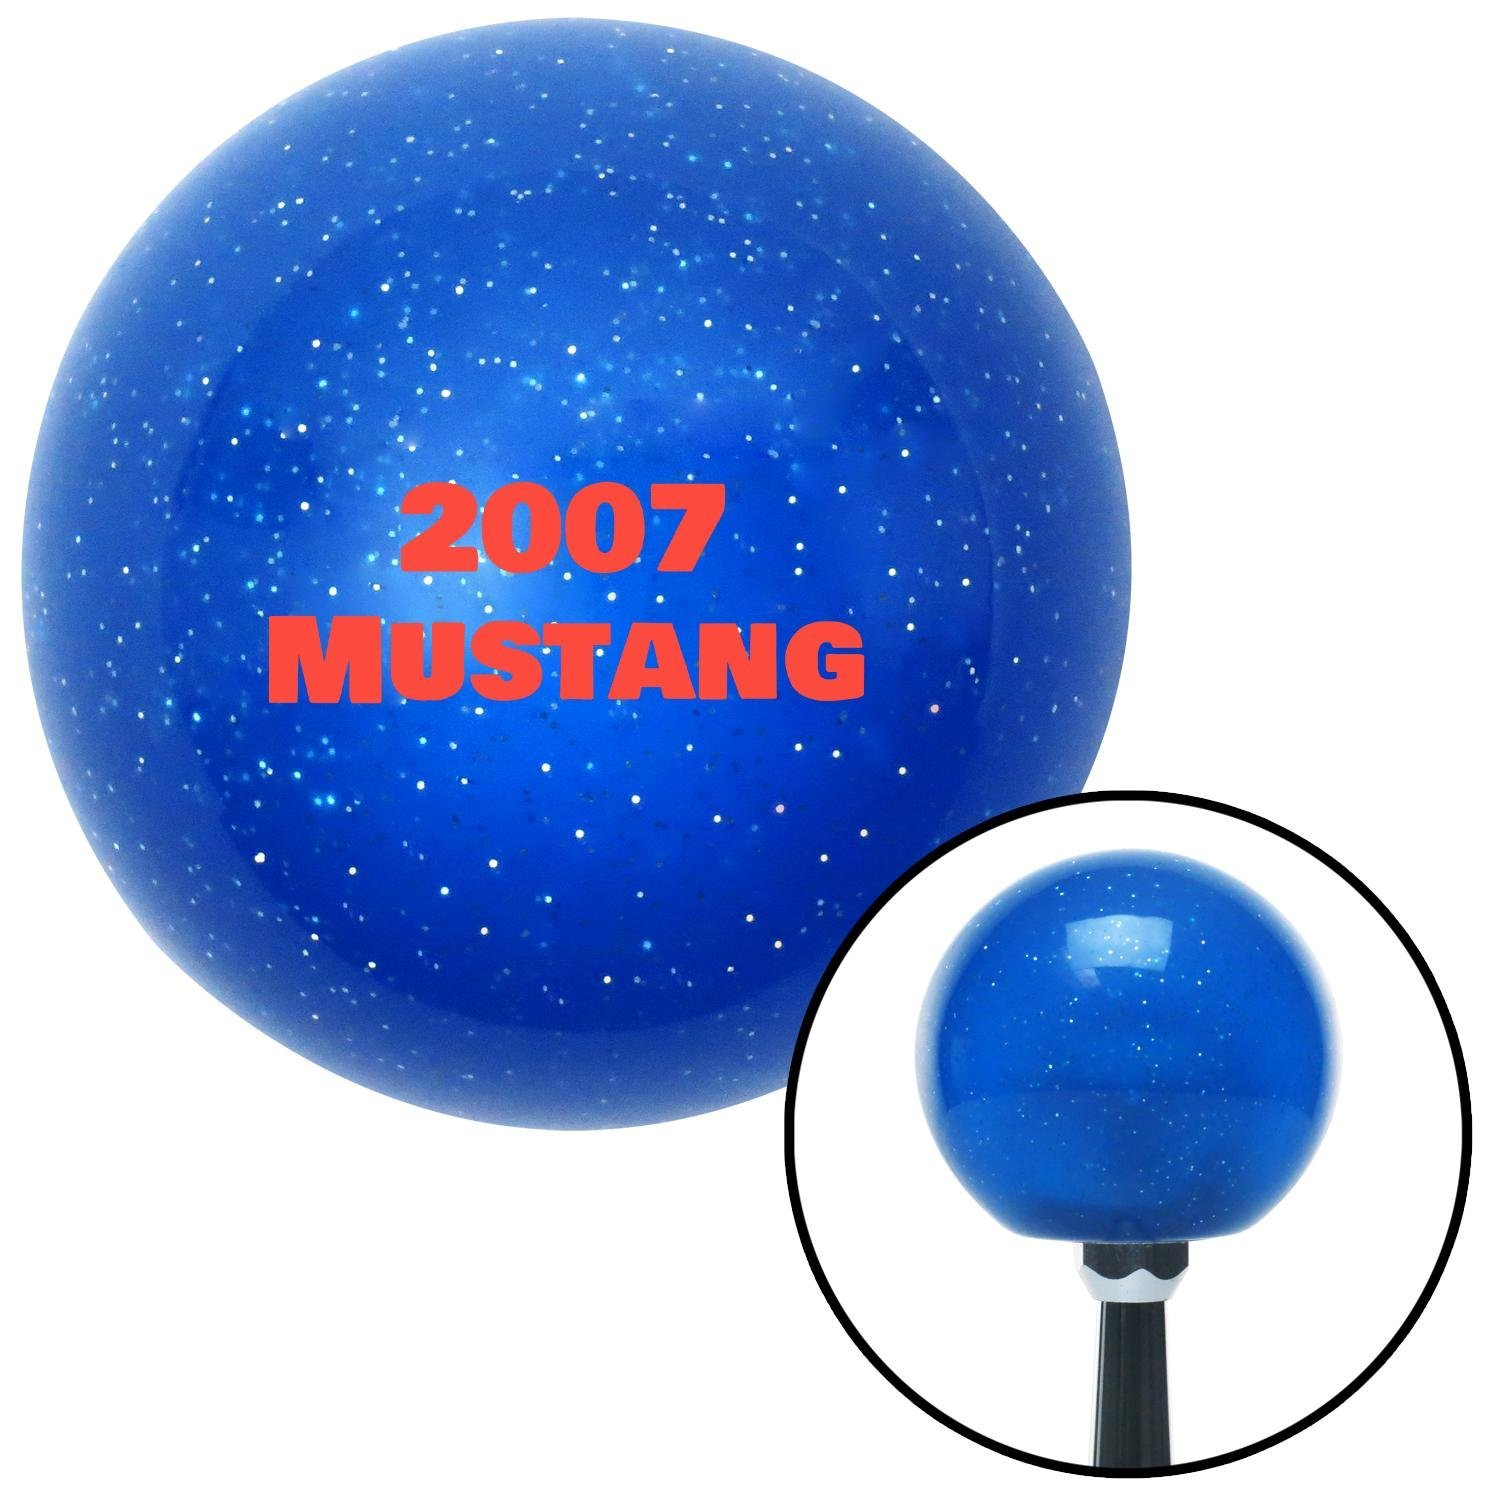 Red 2007 Mustang American Shifter 141008 Blue Metal Flake Shift Knob with M16 x 1.5 Insert